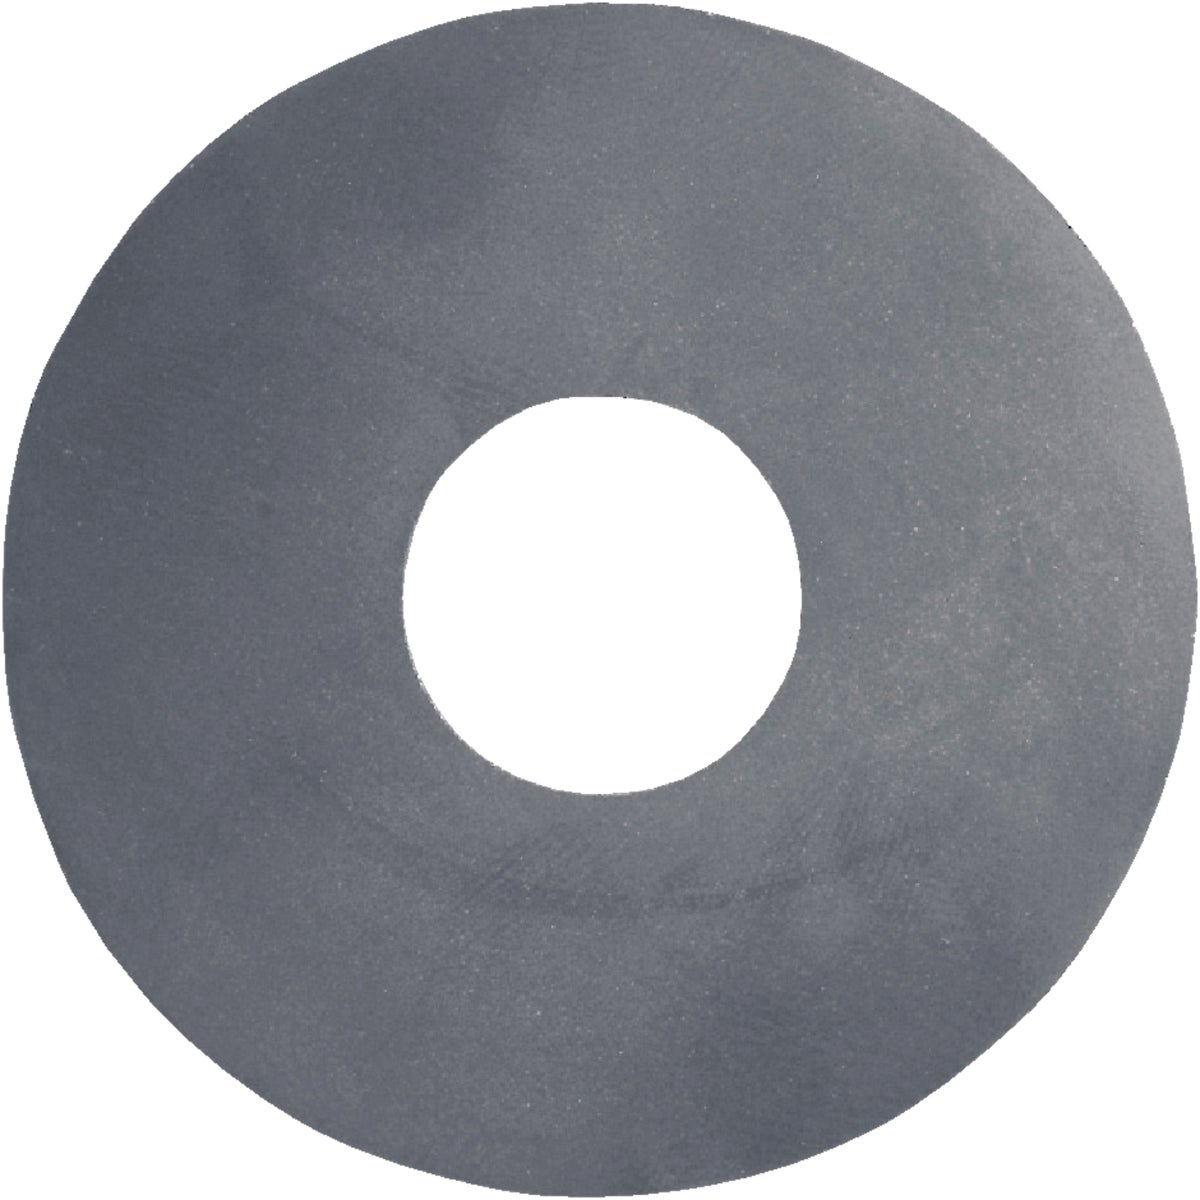 "2-1/4""OD WASHER - 61273B by Danco Perfect Match"